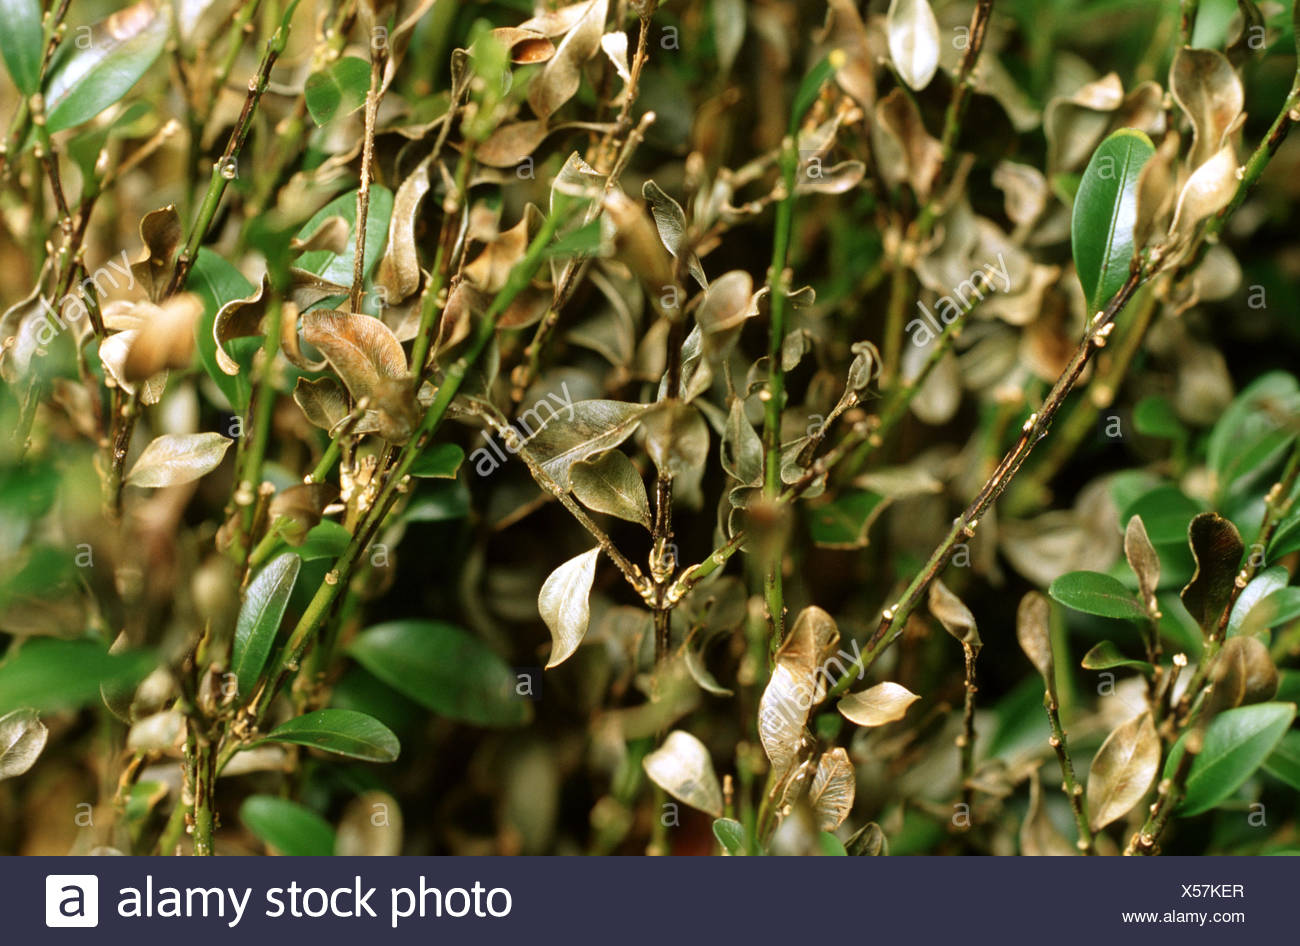 common box, boxwood (Buxus sempervirens), fungal decay, Germany - Stock Image